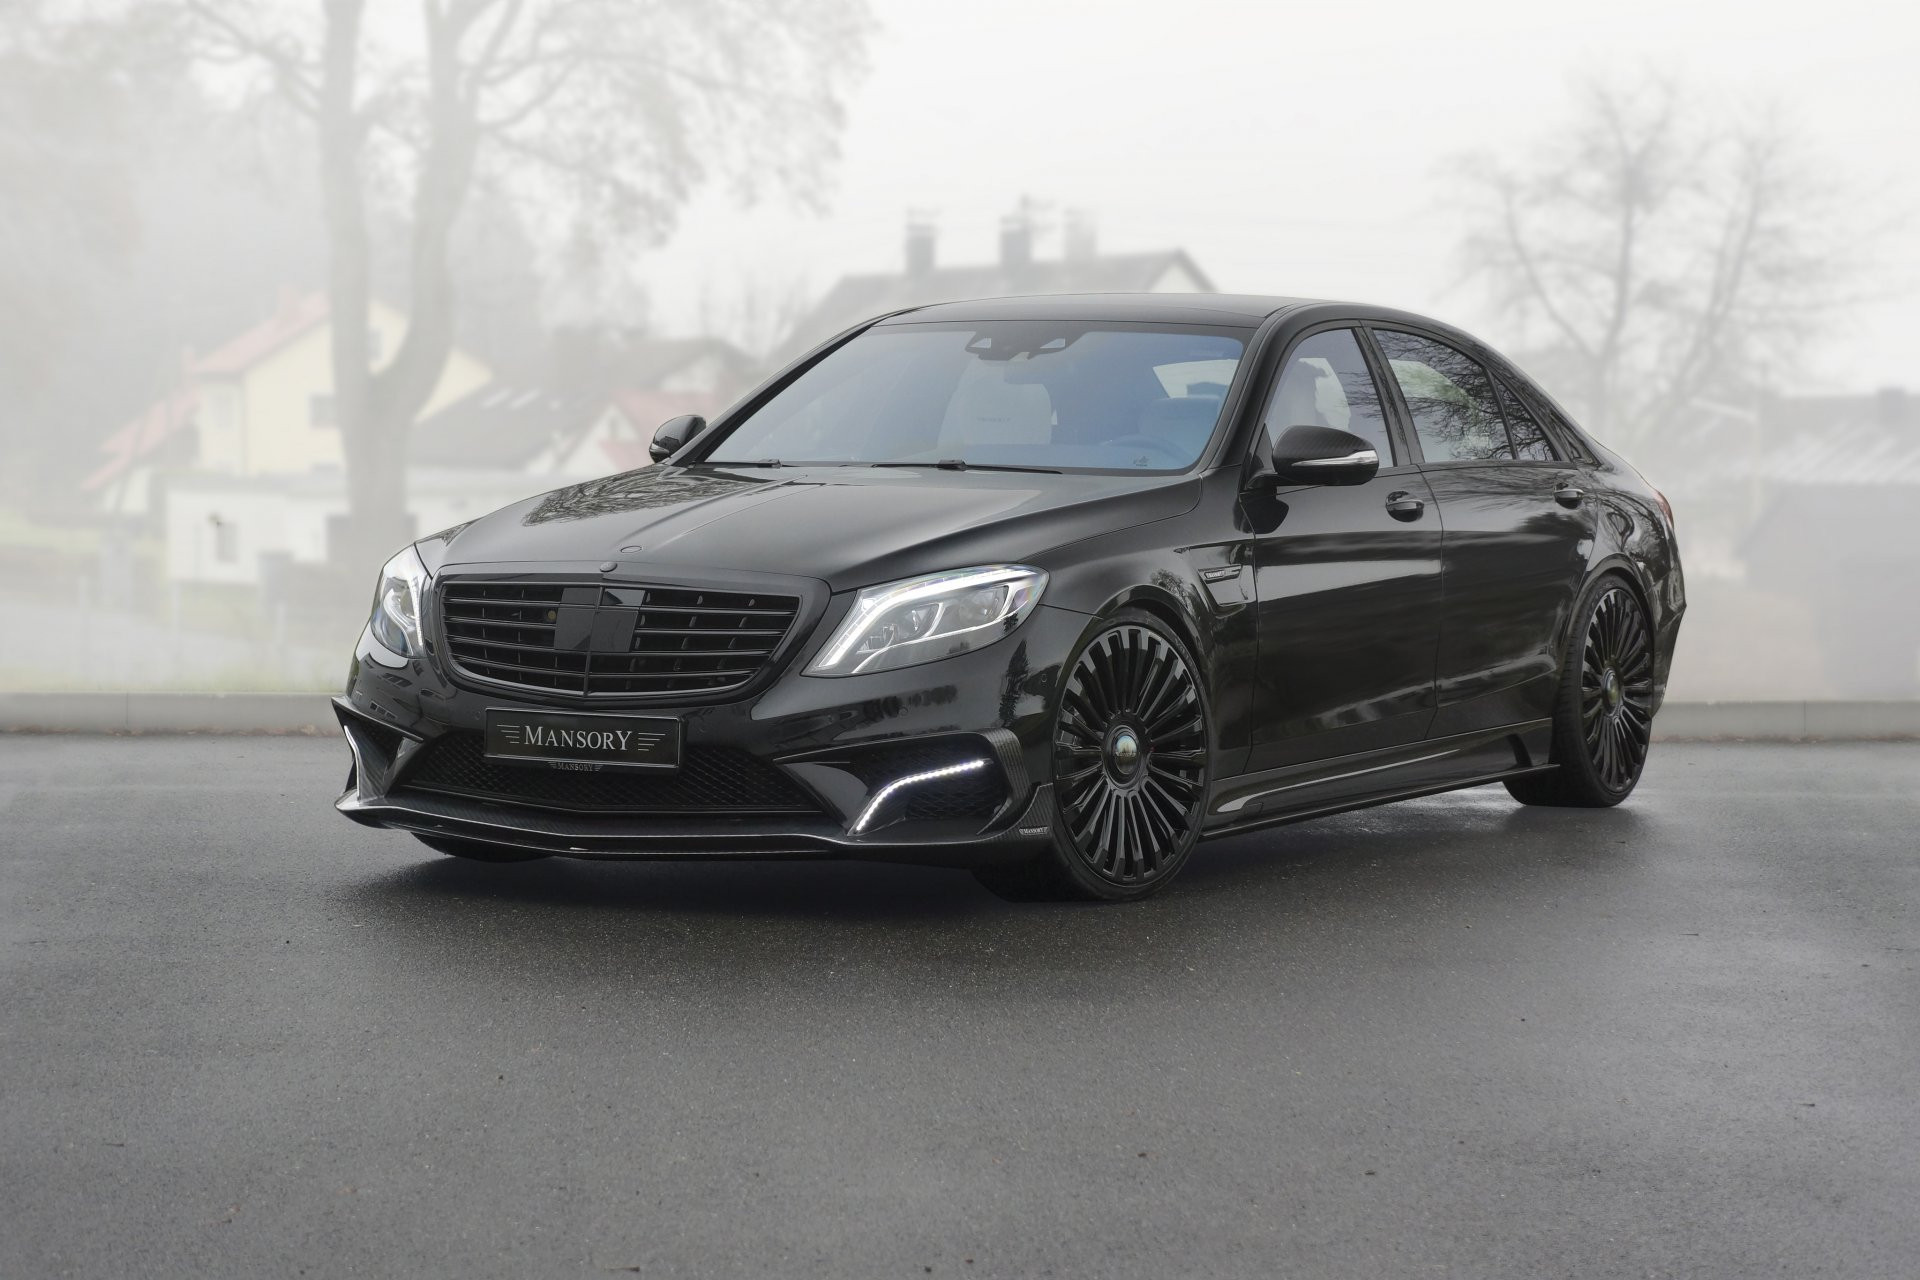 2014 mansory mercedes-benz s 63 amg w222